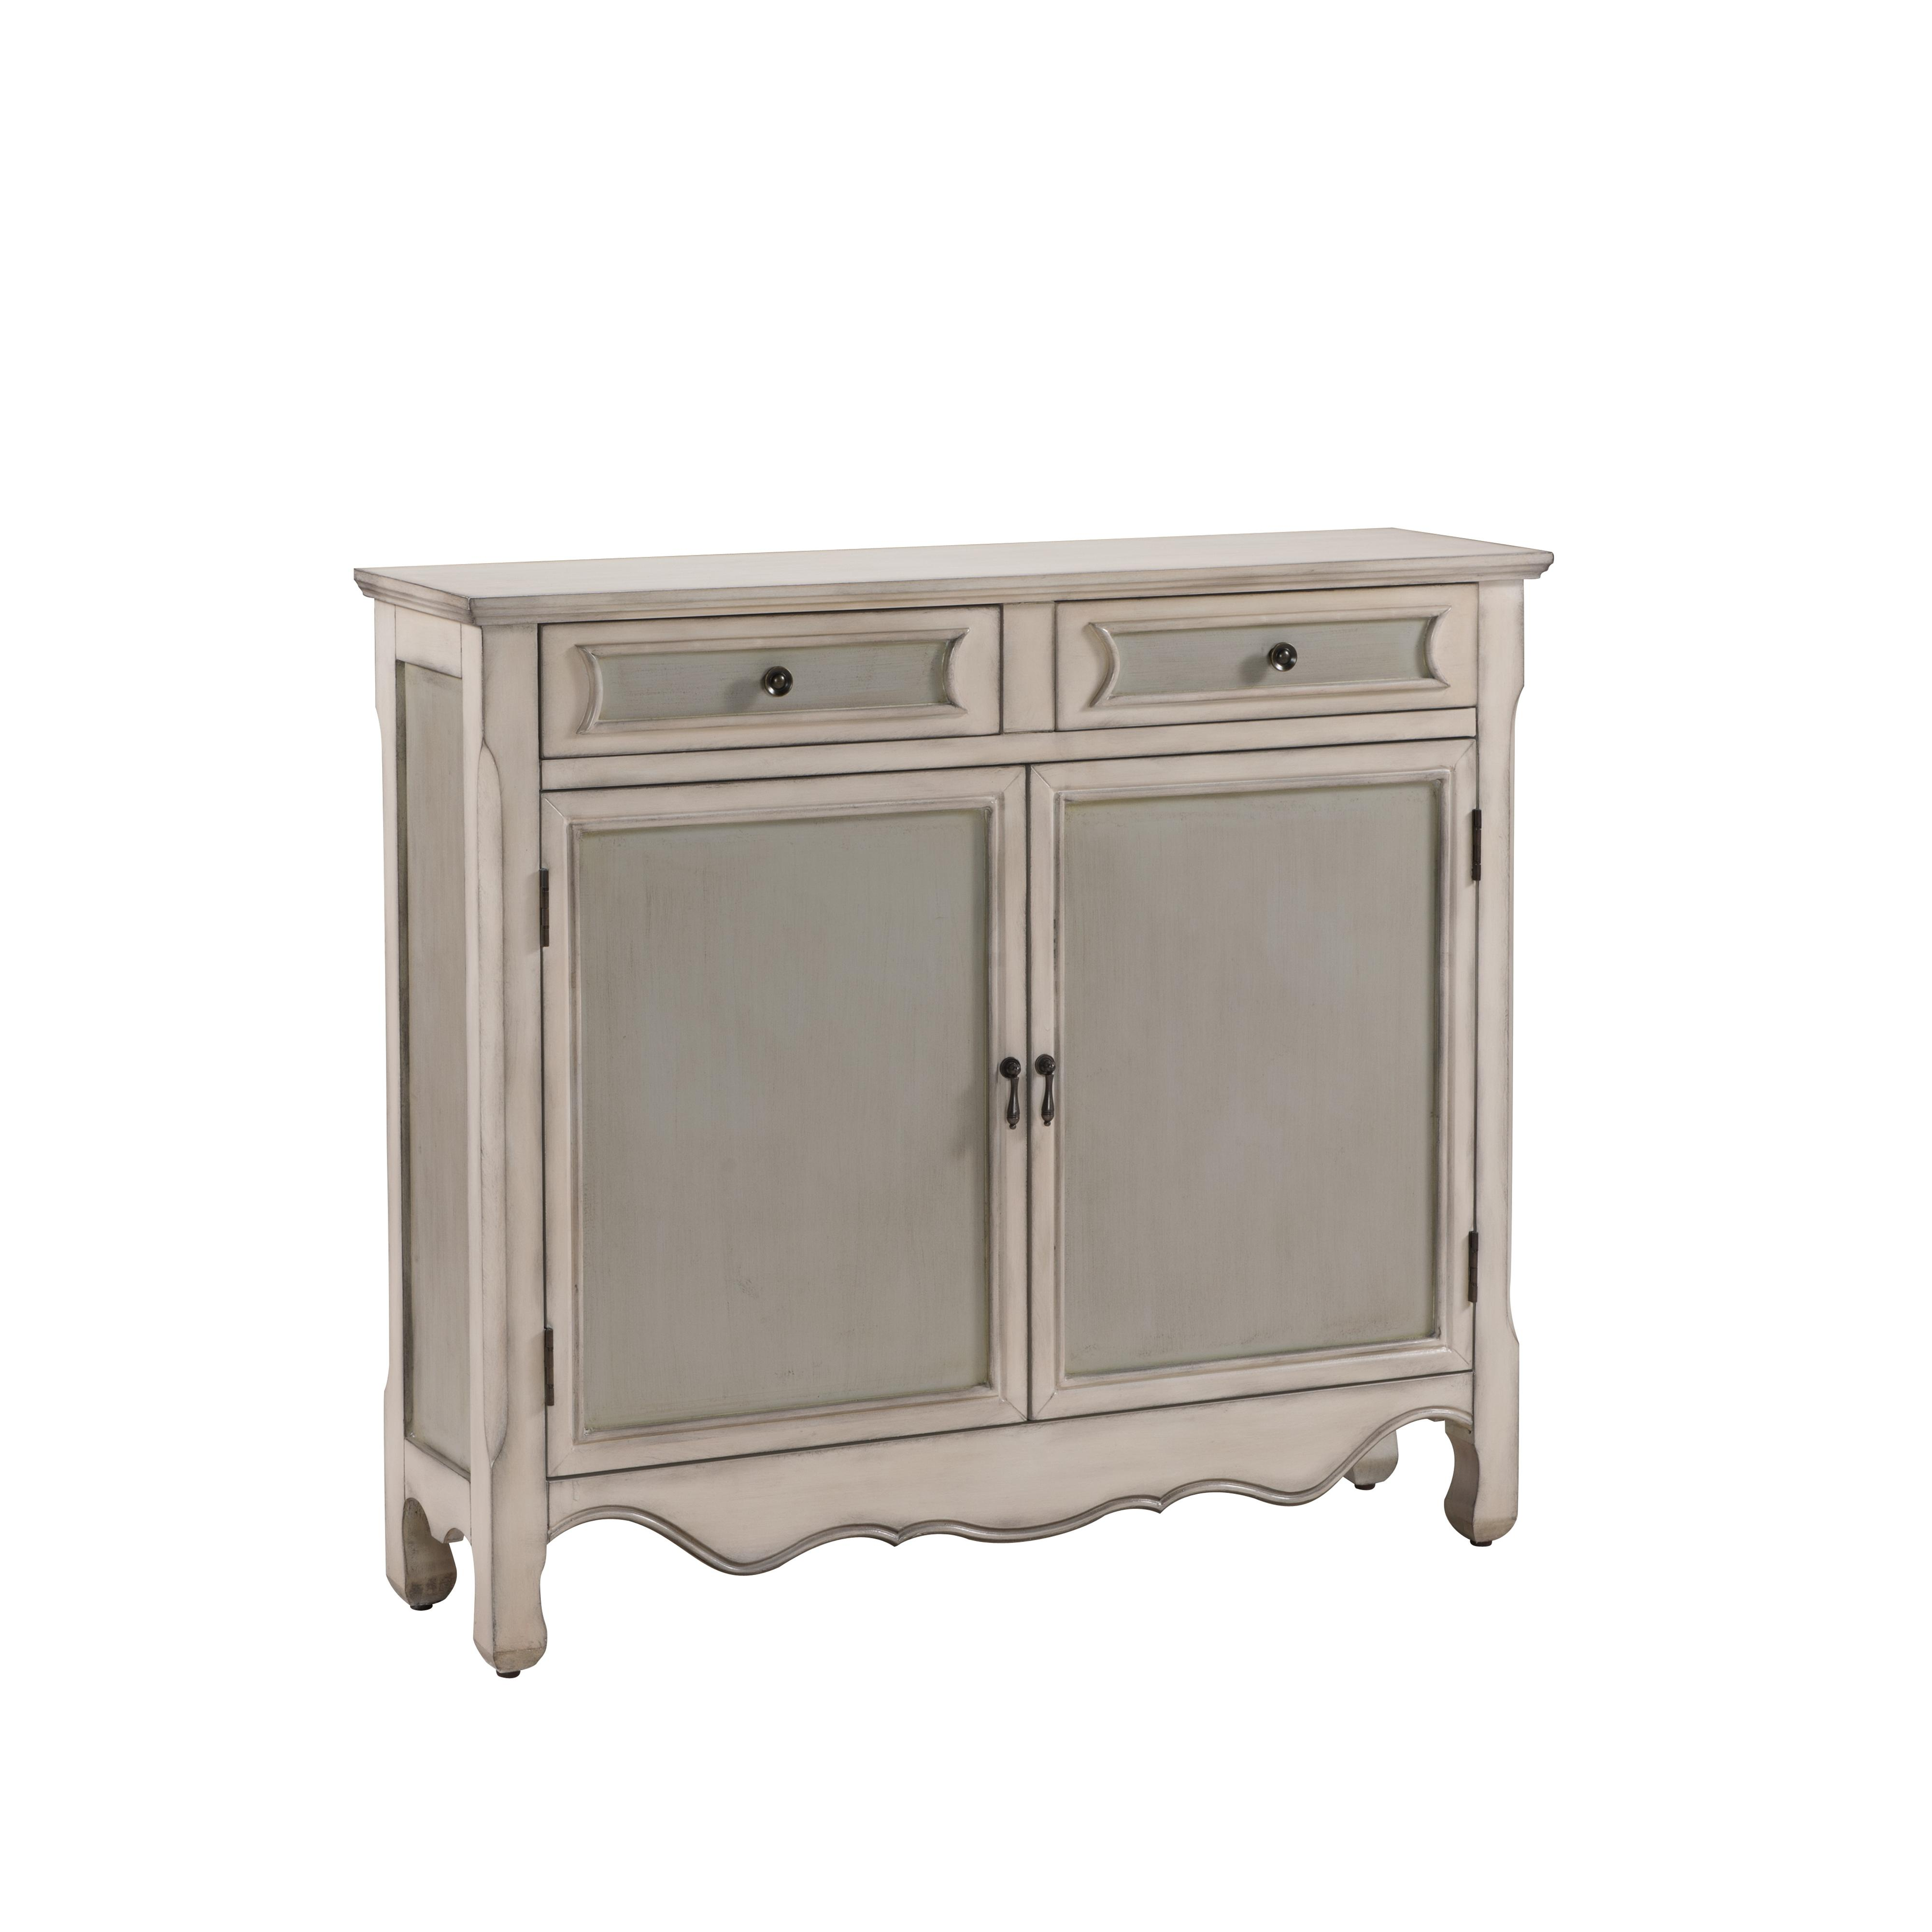 Coast to Coast Imports Coast to Coast Accents Two Drawer Two Door Cupboard - Item Number: 61699